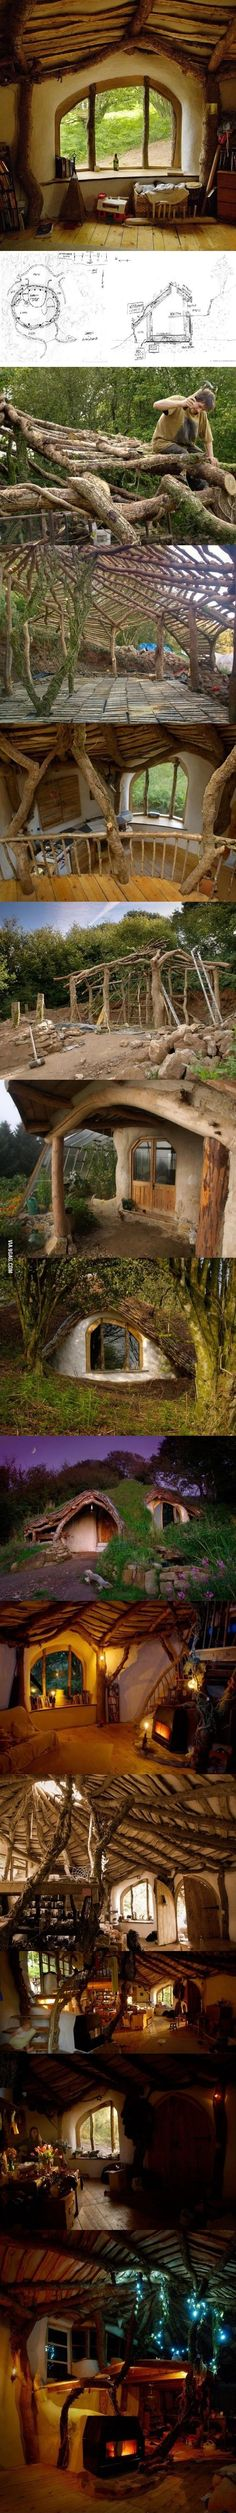 HOBBIT house, living roof. This is so awesome. I would LOVE if this were my cabin.